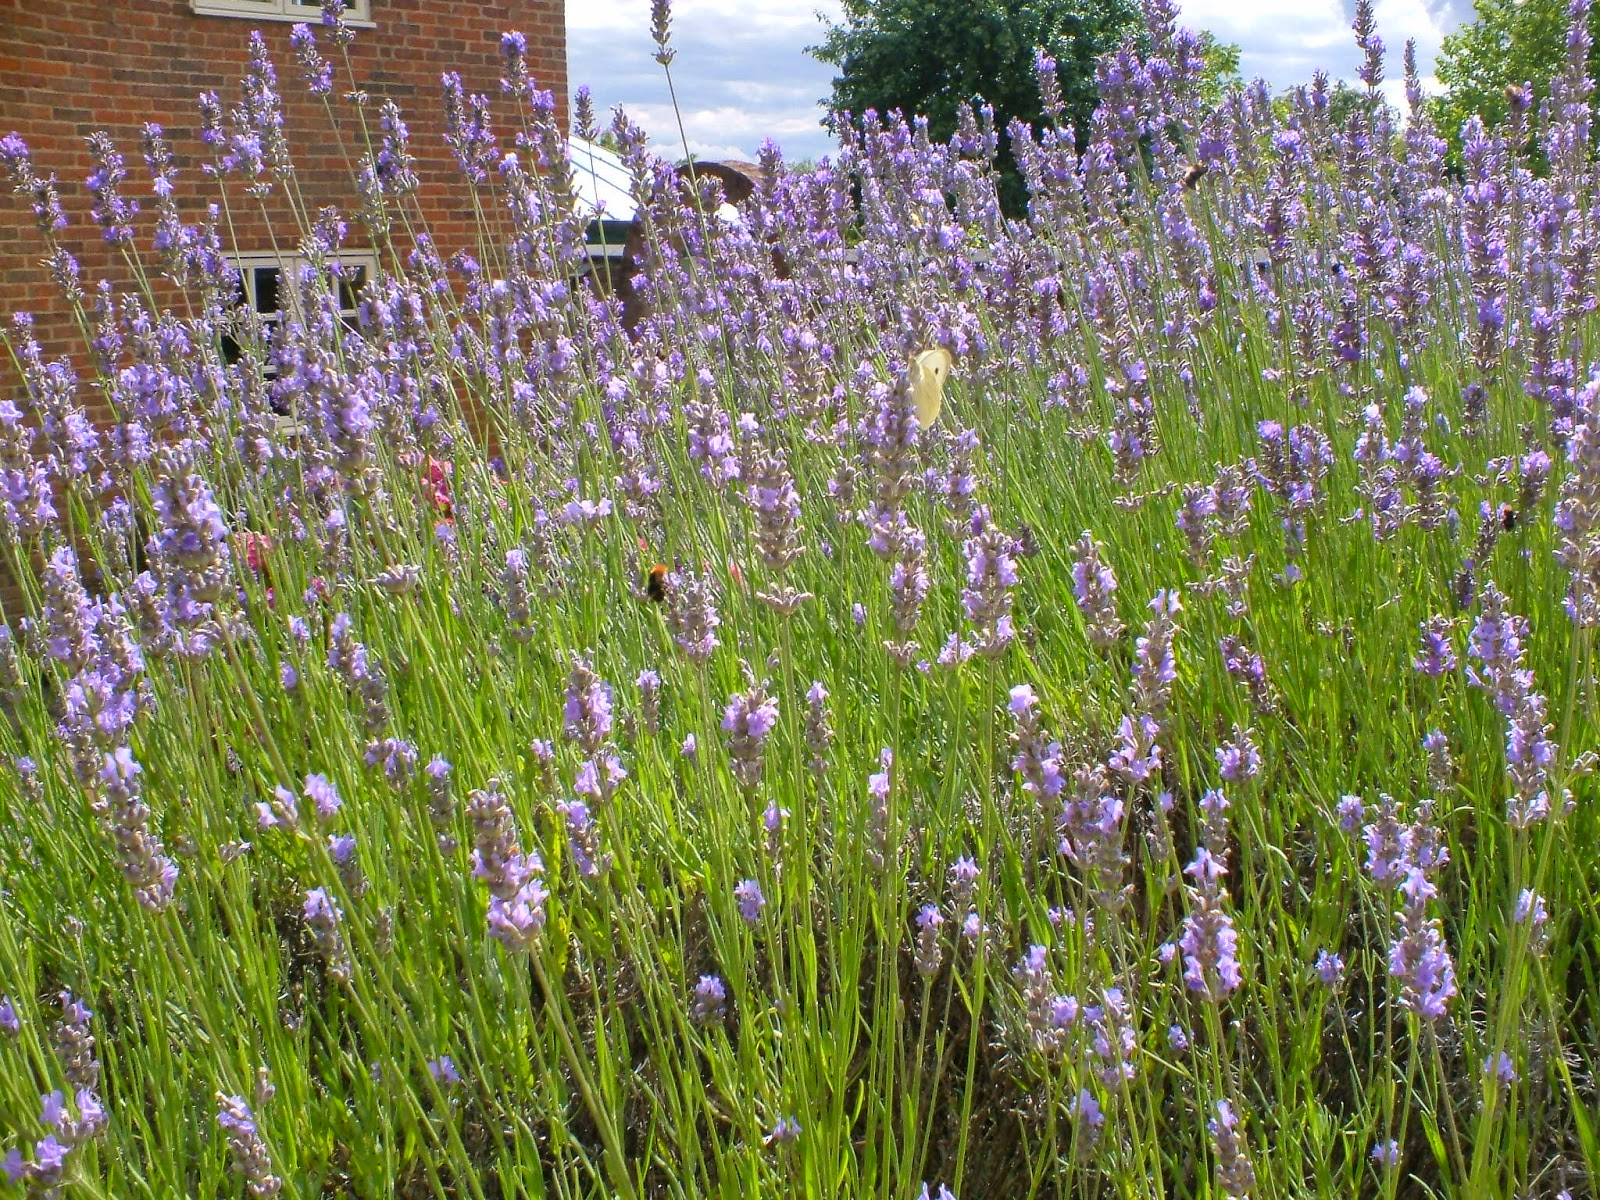 Picture of Mauve English lavender hidcote blue in a border